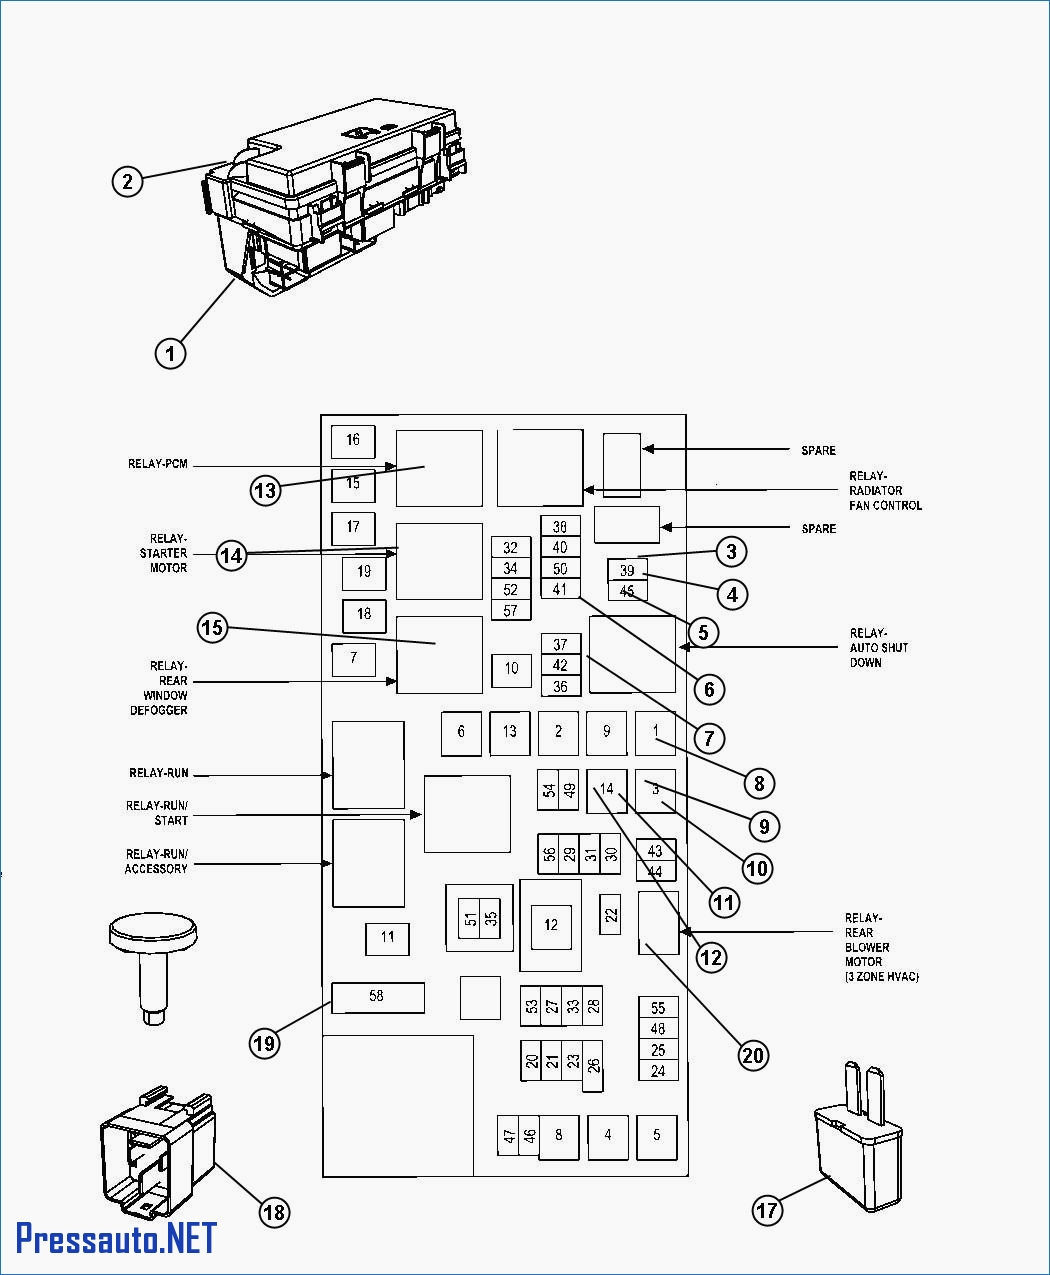 1969 Dodge Fuse Box Diagram Wiring Library Charger Pcm 2008 Block And Schematic Diagrams U2022 Buick Skylark